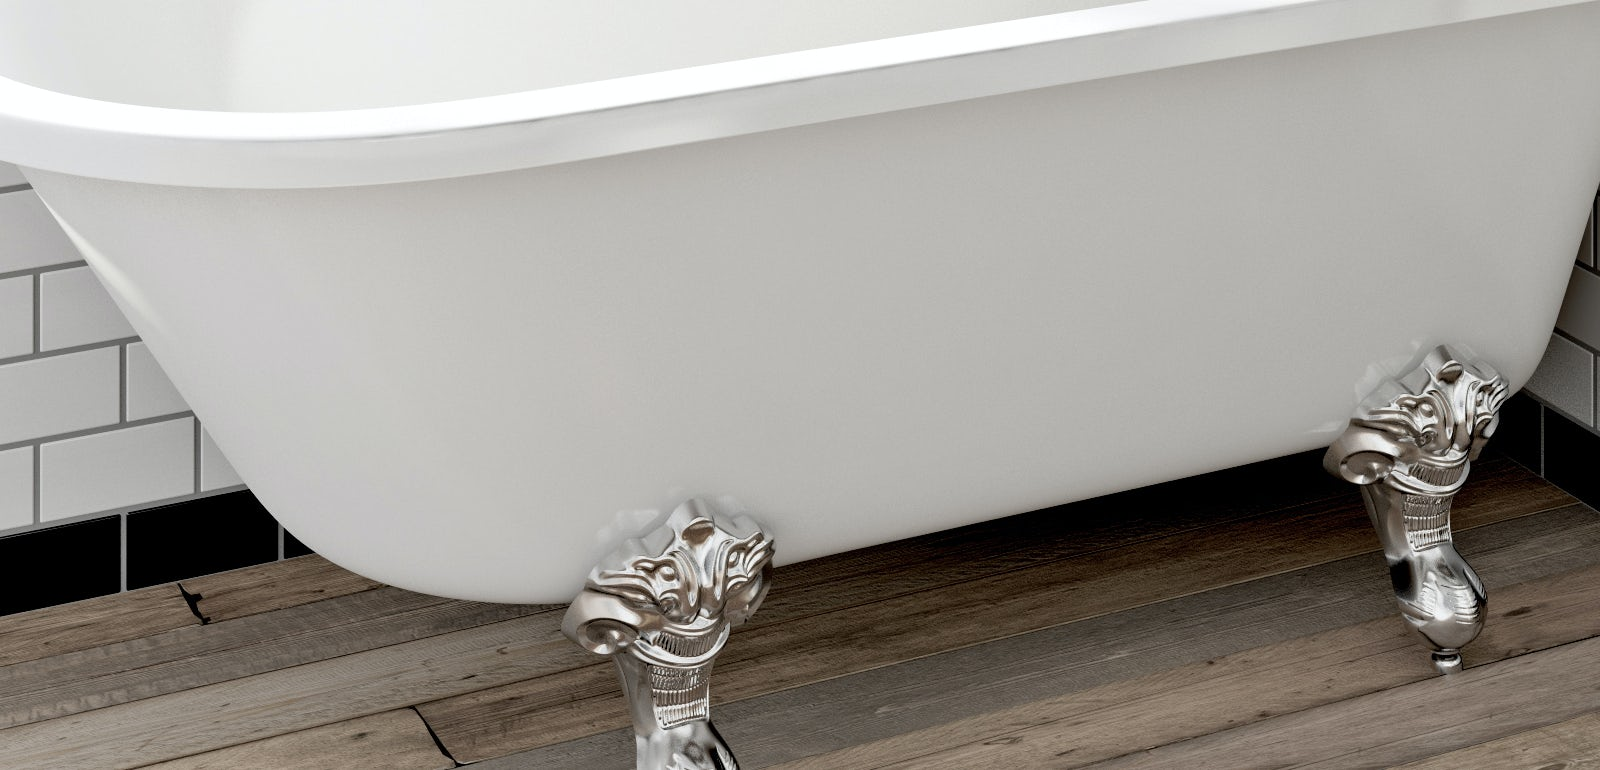 Introducing the new Sally and Shakespeare baths